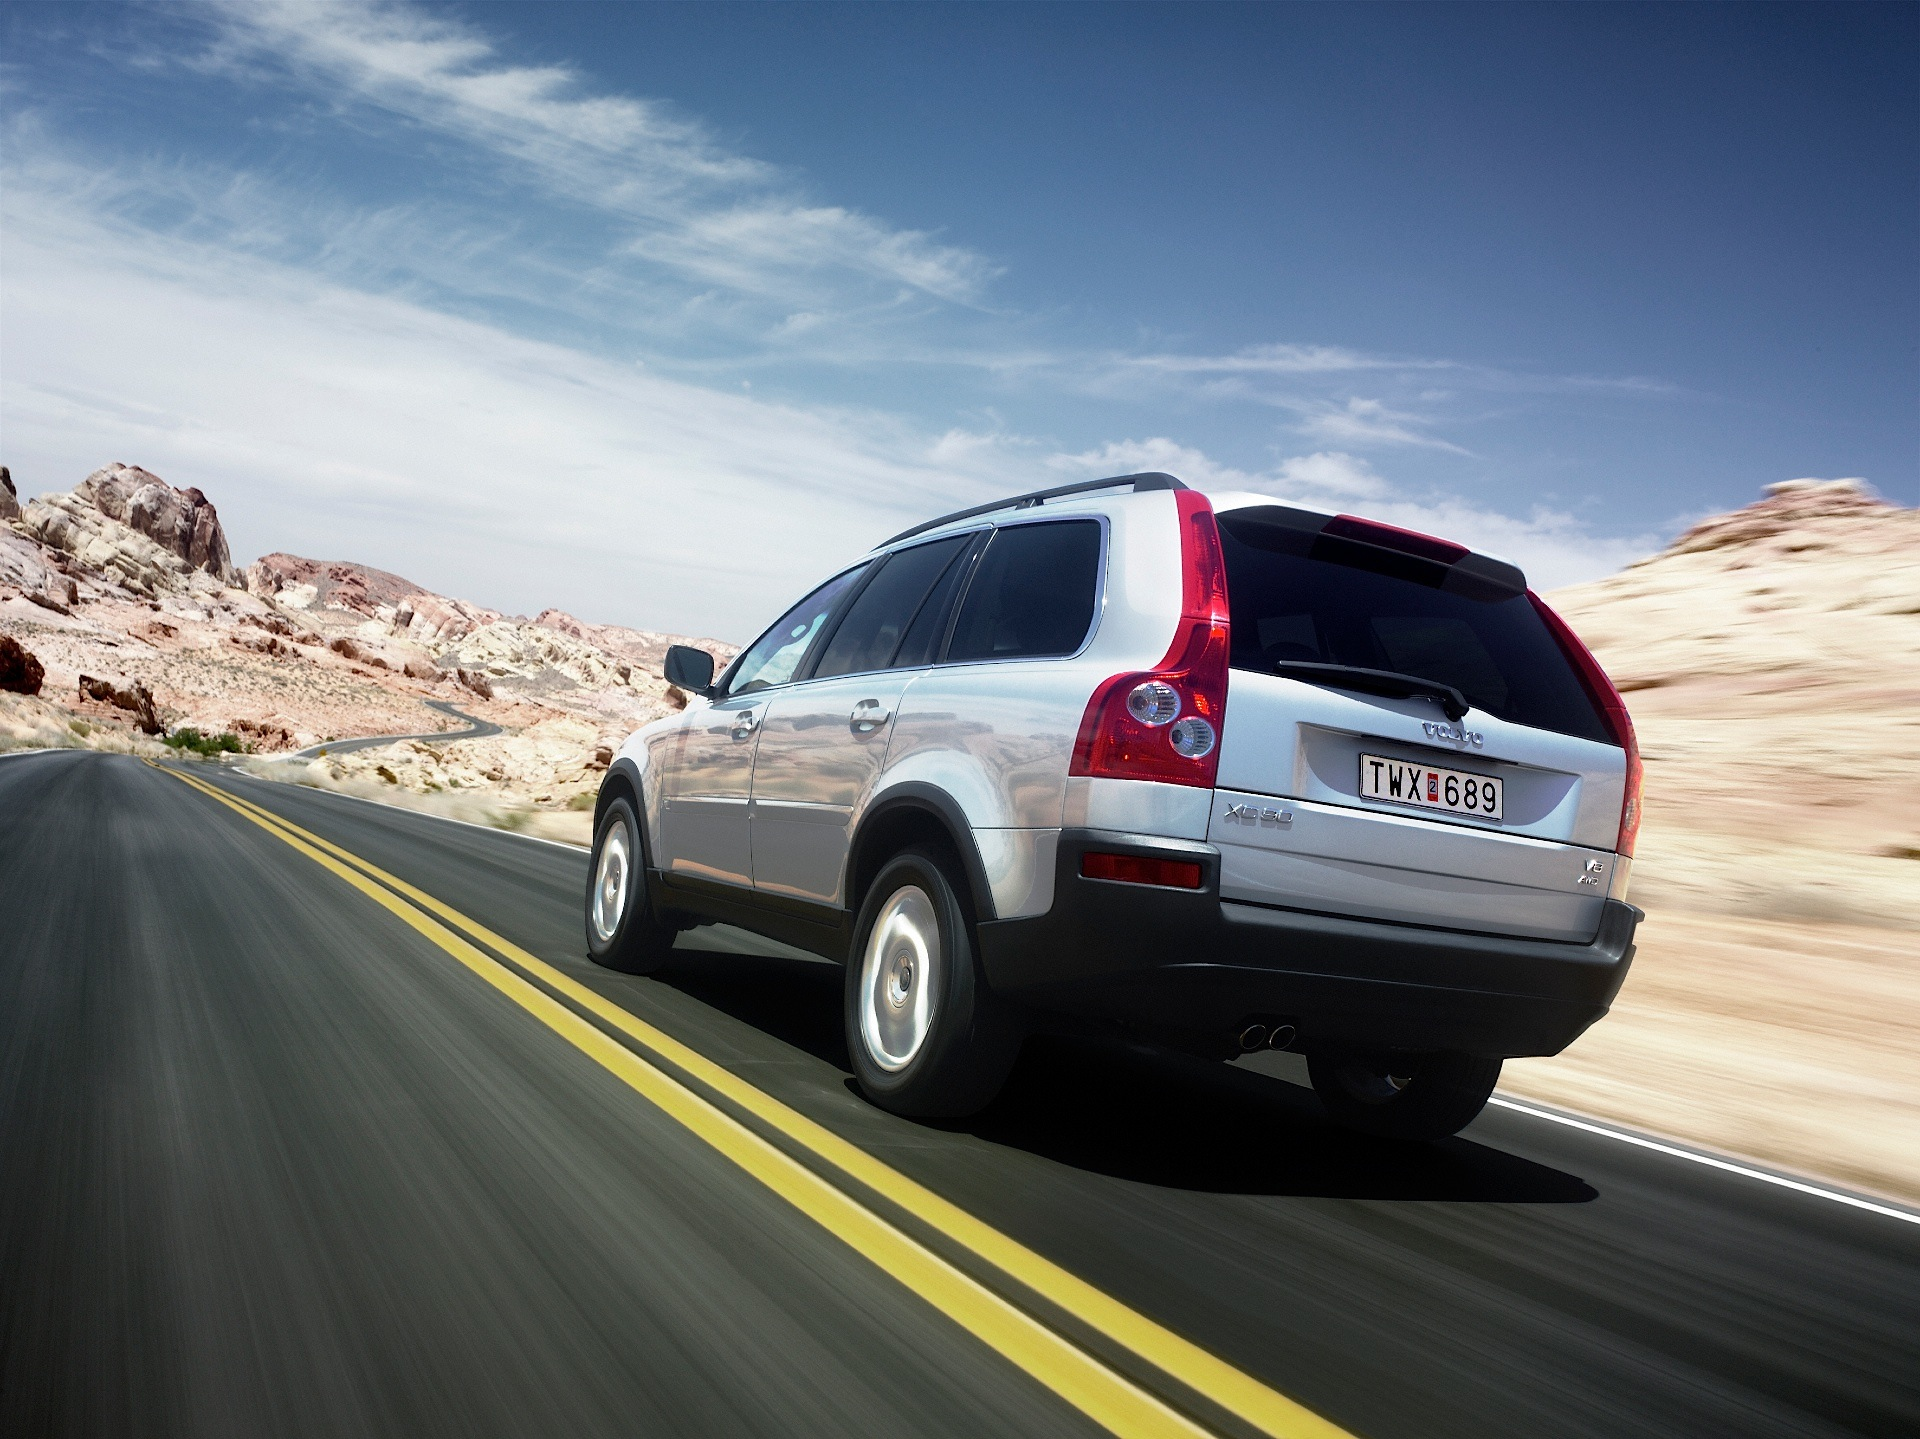 VOLVO XC90 specs & photos - 2002, 2003, 2004, 2005, 2006 - autoevolution